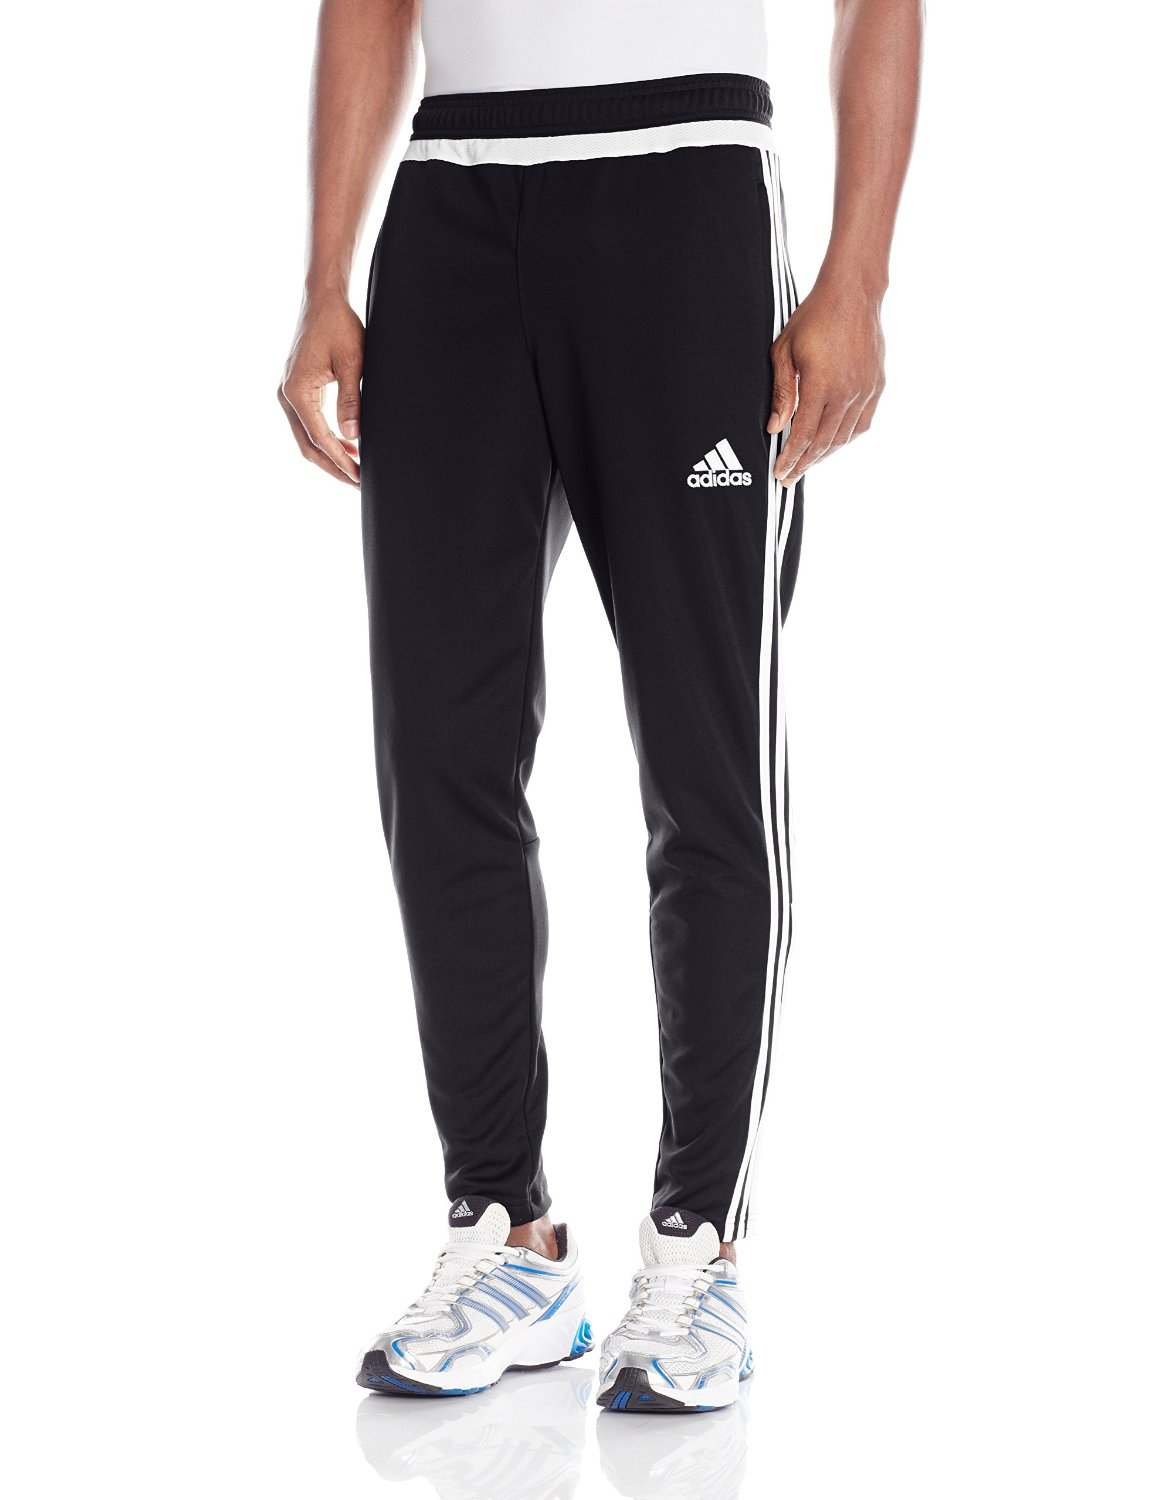 adidas Performance Men's Tiro Training Pant, Small, Black/White/Black